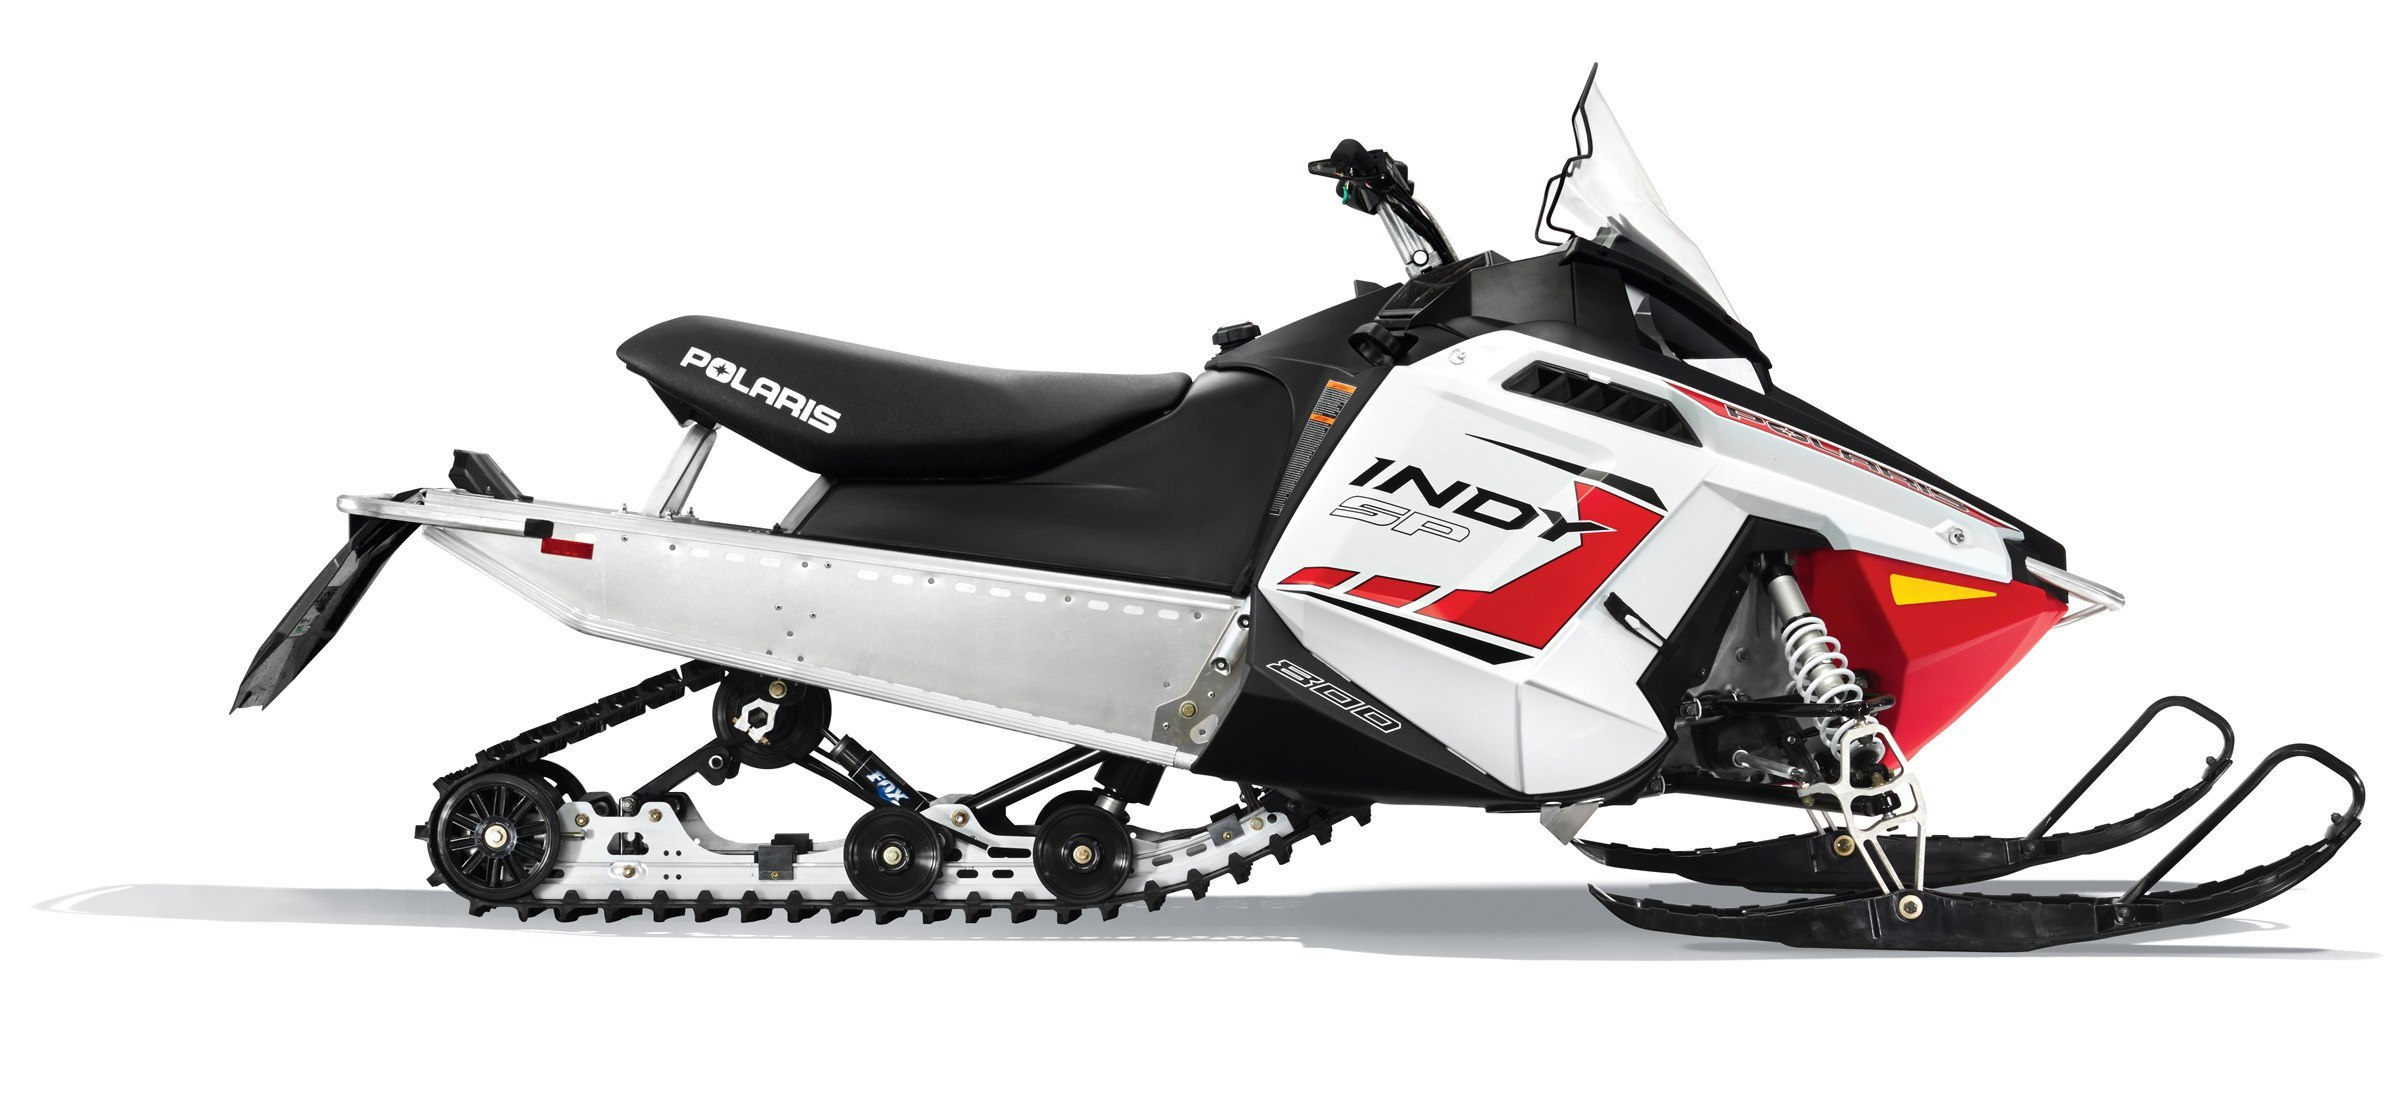 2016 Polaris 800 Indy SP in Lake Mills, Iowa - Photo 2